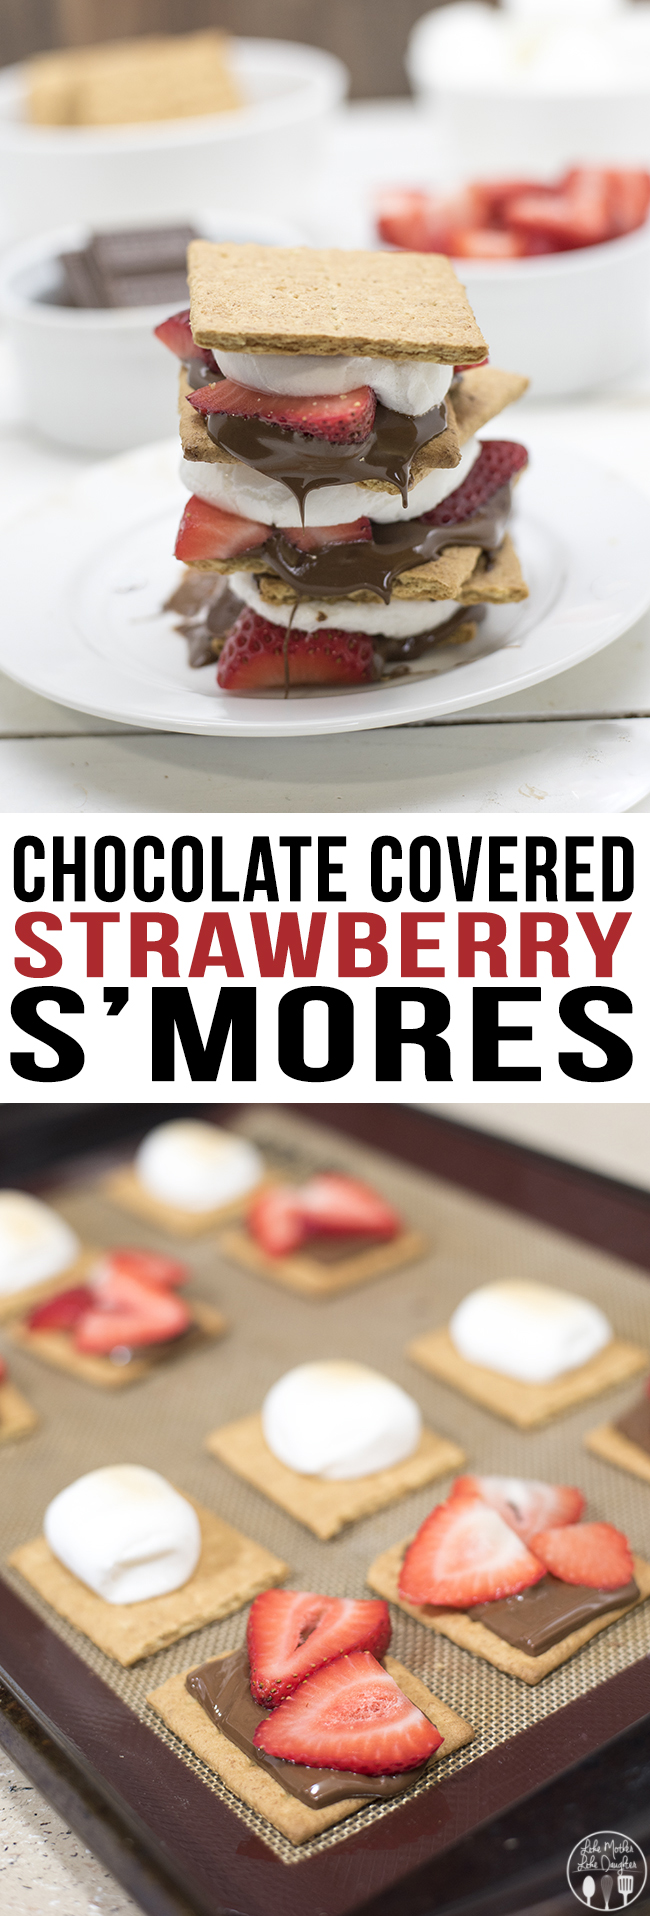 Chocolate Covered Strawberry S'mores - The addition of strawberries to ...